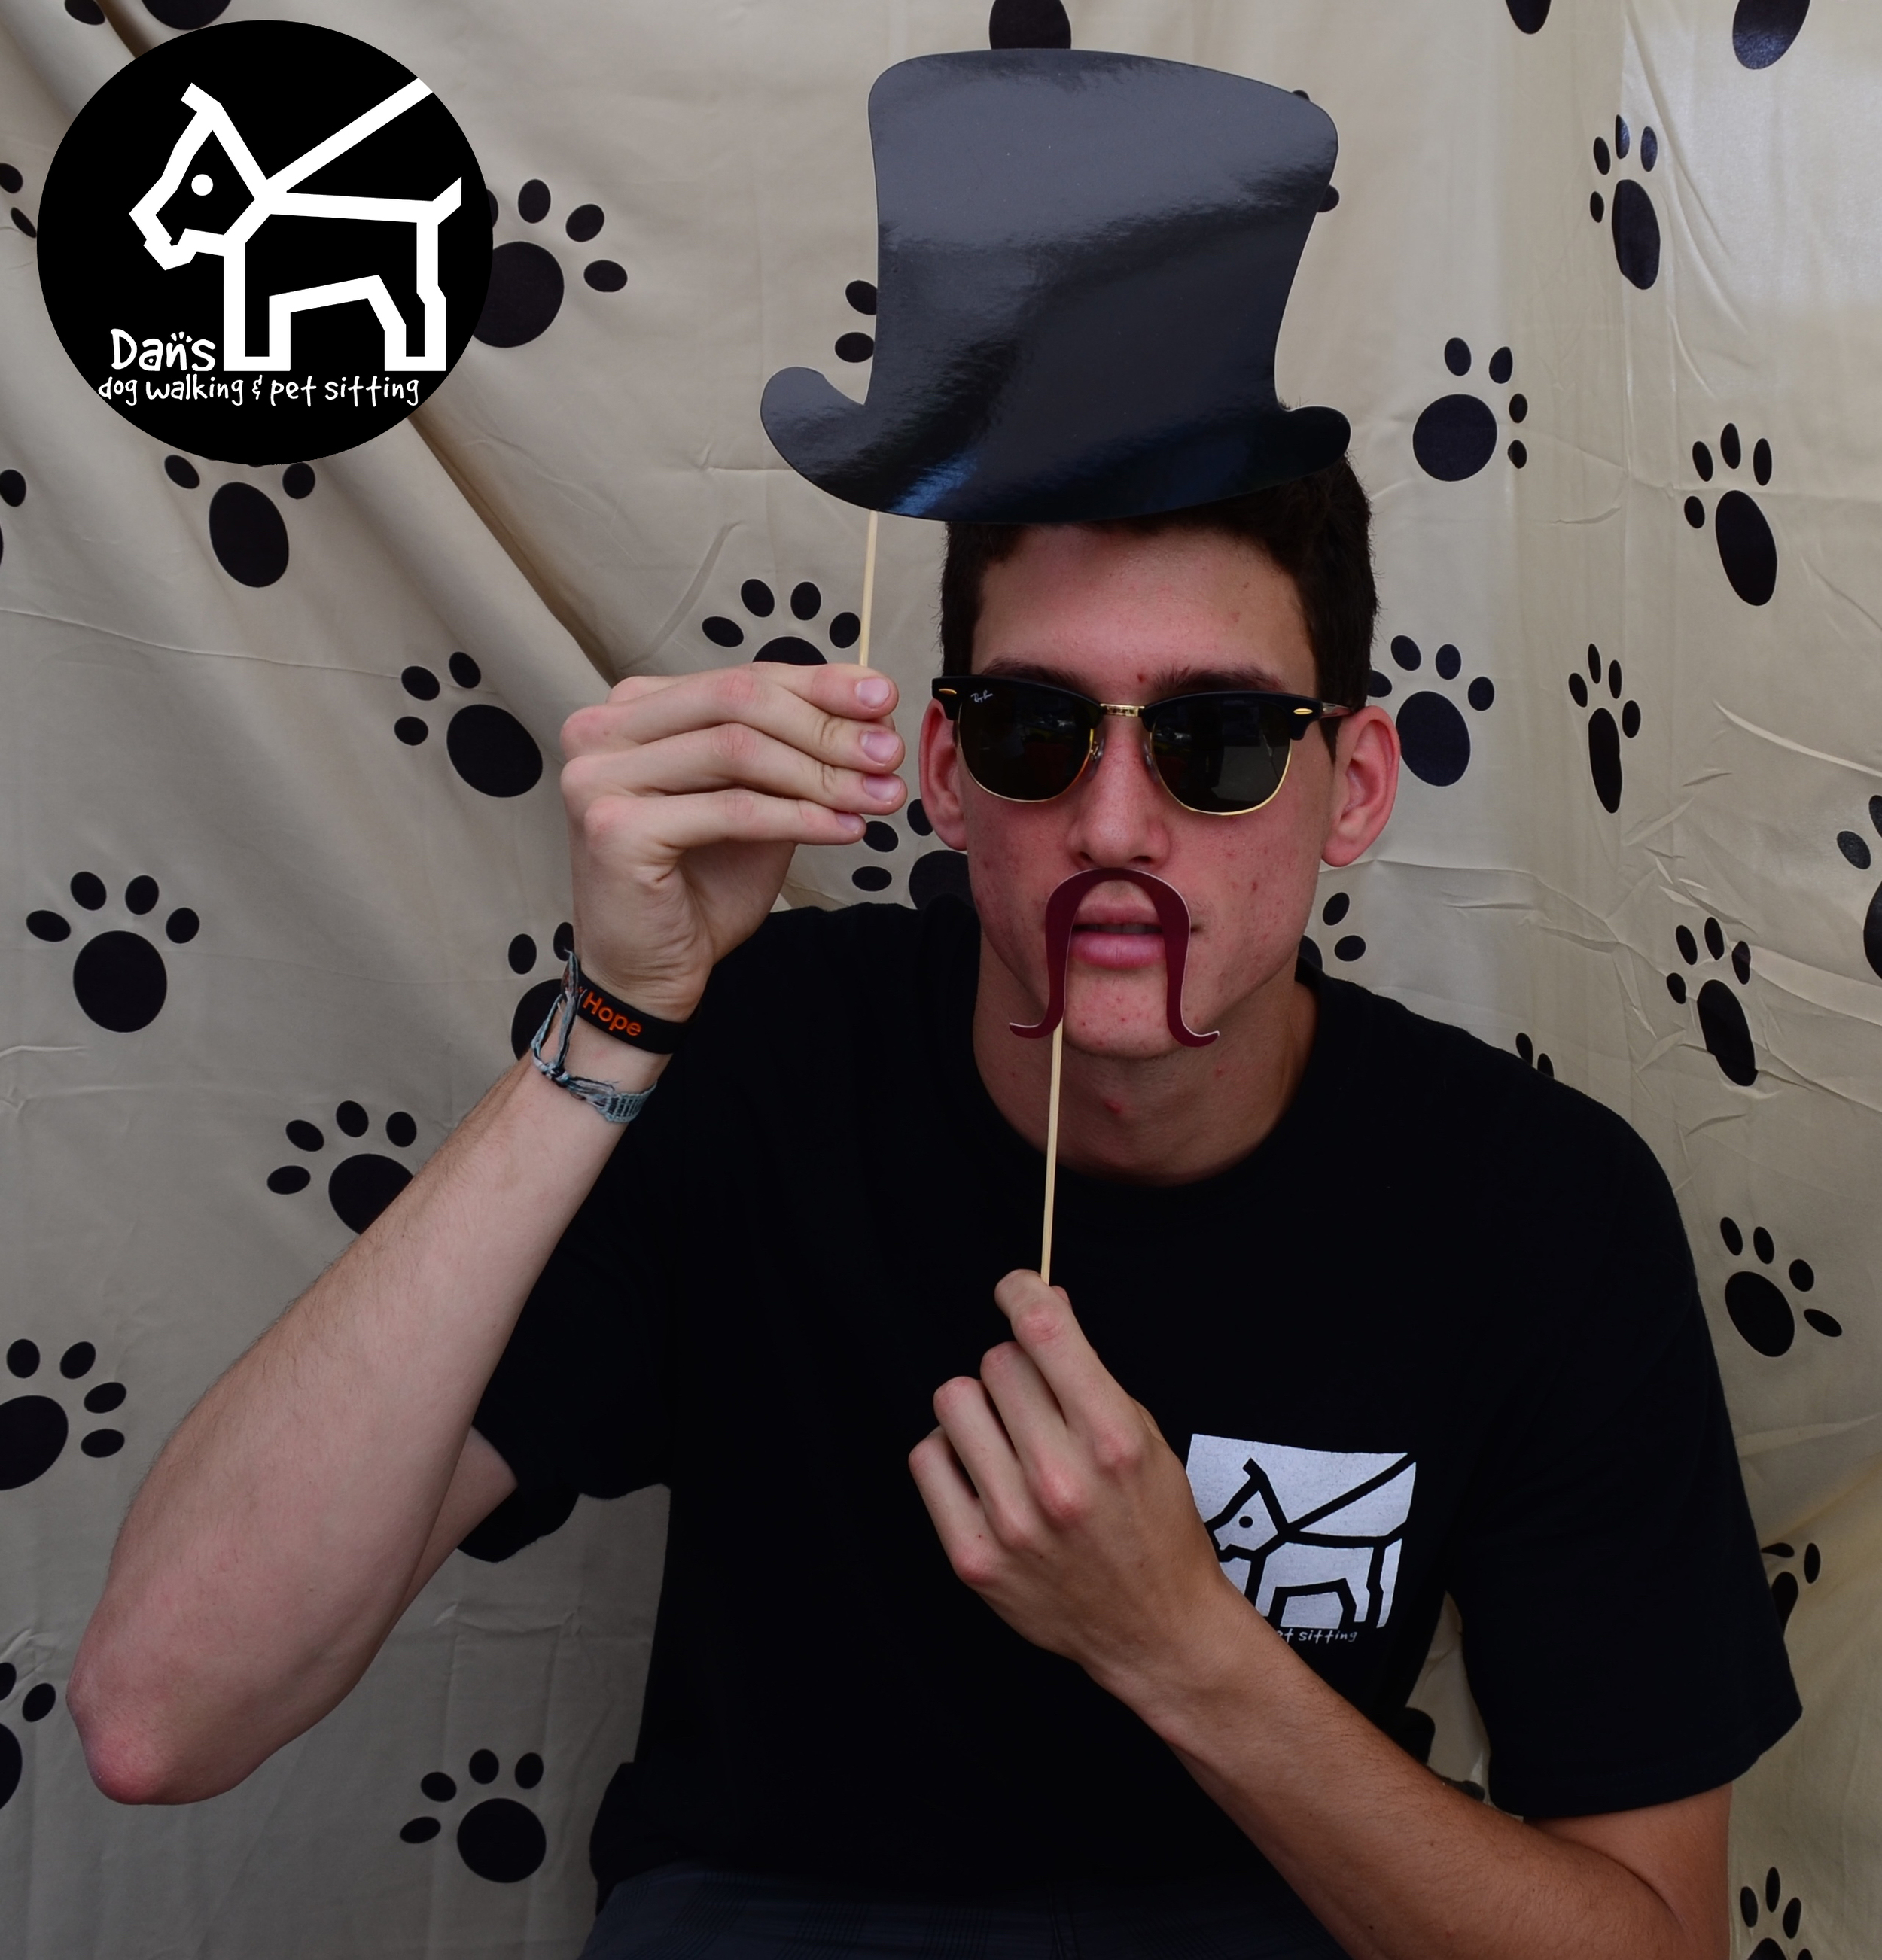 Mauro at Dan's Dog Walking Photobooth at Harbor Fest 2015.jpg